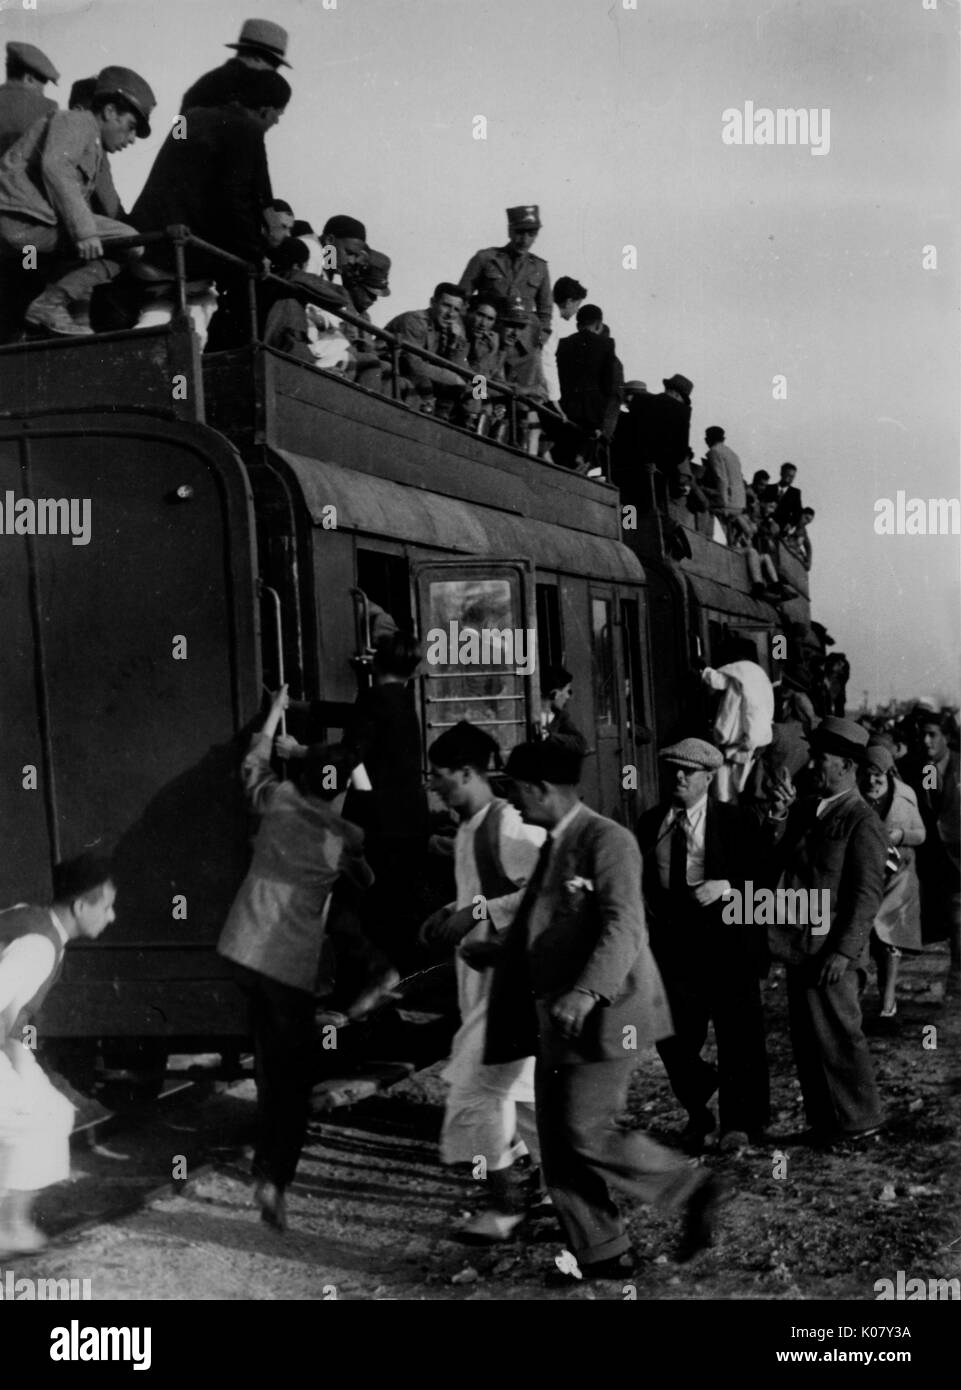 Libya's ';Desert Express';, jammed with soldiers, colonists and natives. The Gadames-Tripoli railway runs 350 miles through unbearable heat, unprotected from the sun     Date: 1940s - Stock Image